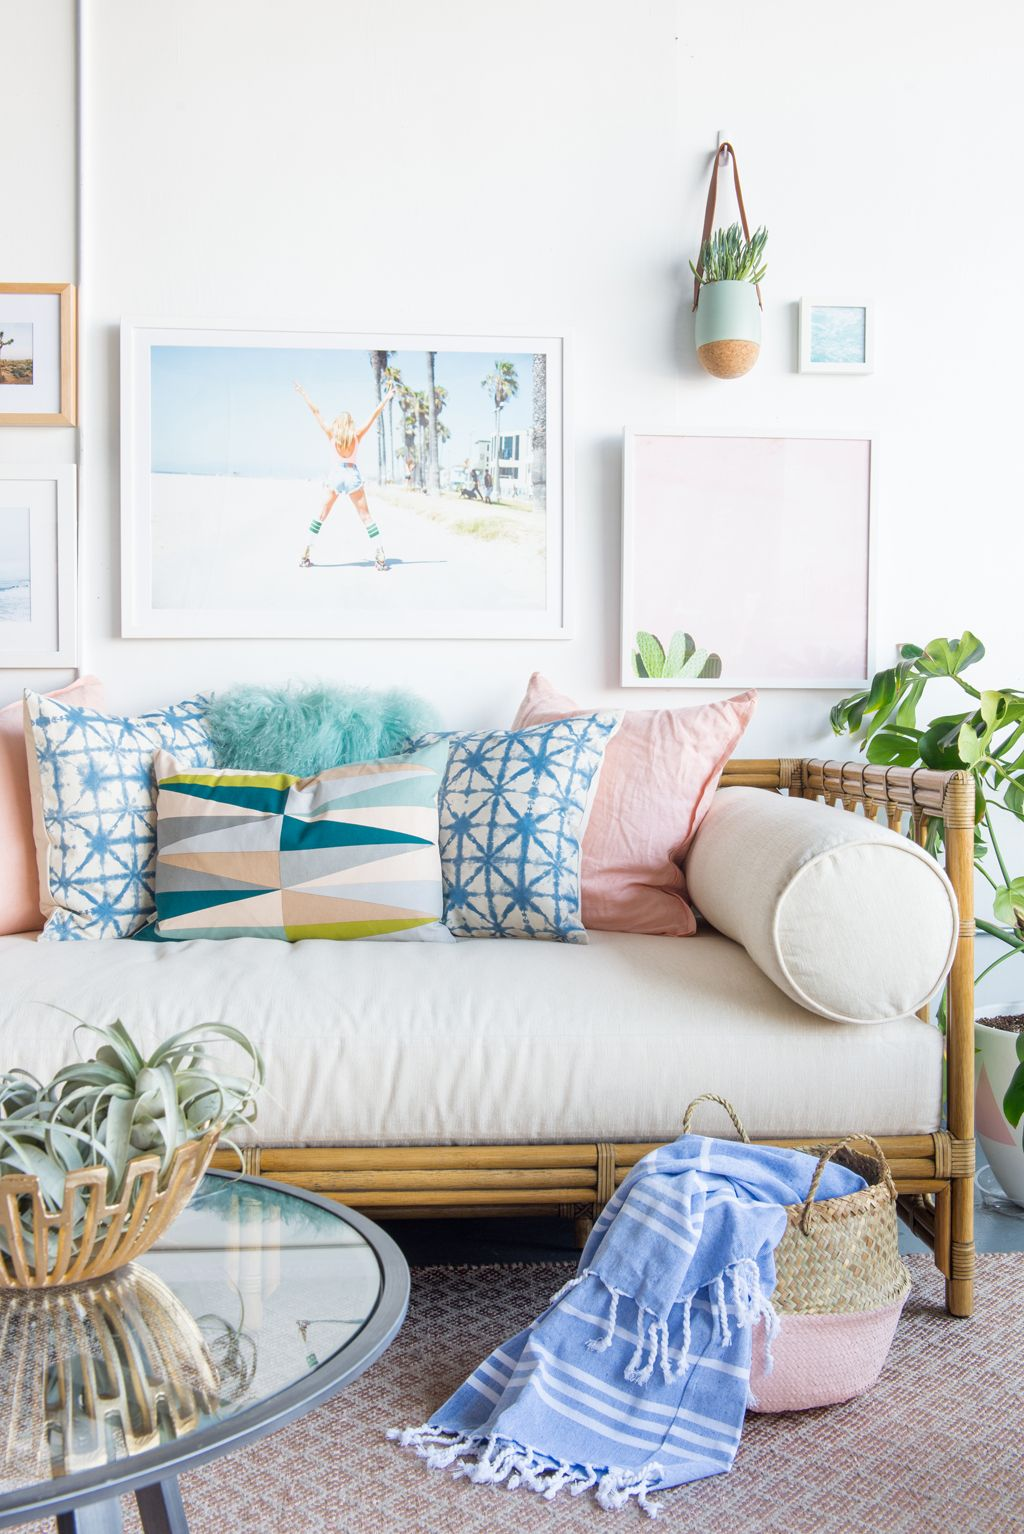 Daybed In Living Room Ideas Decoration Pictures For Pattern On Home 2019 More Beachy Rooms